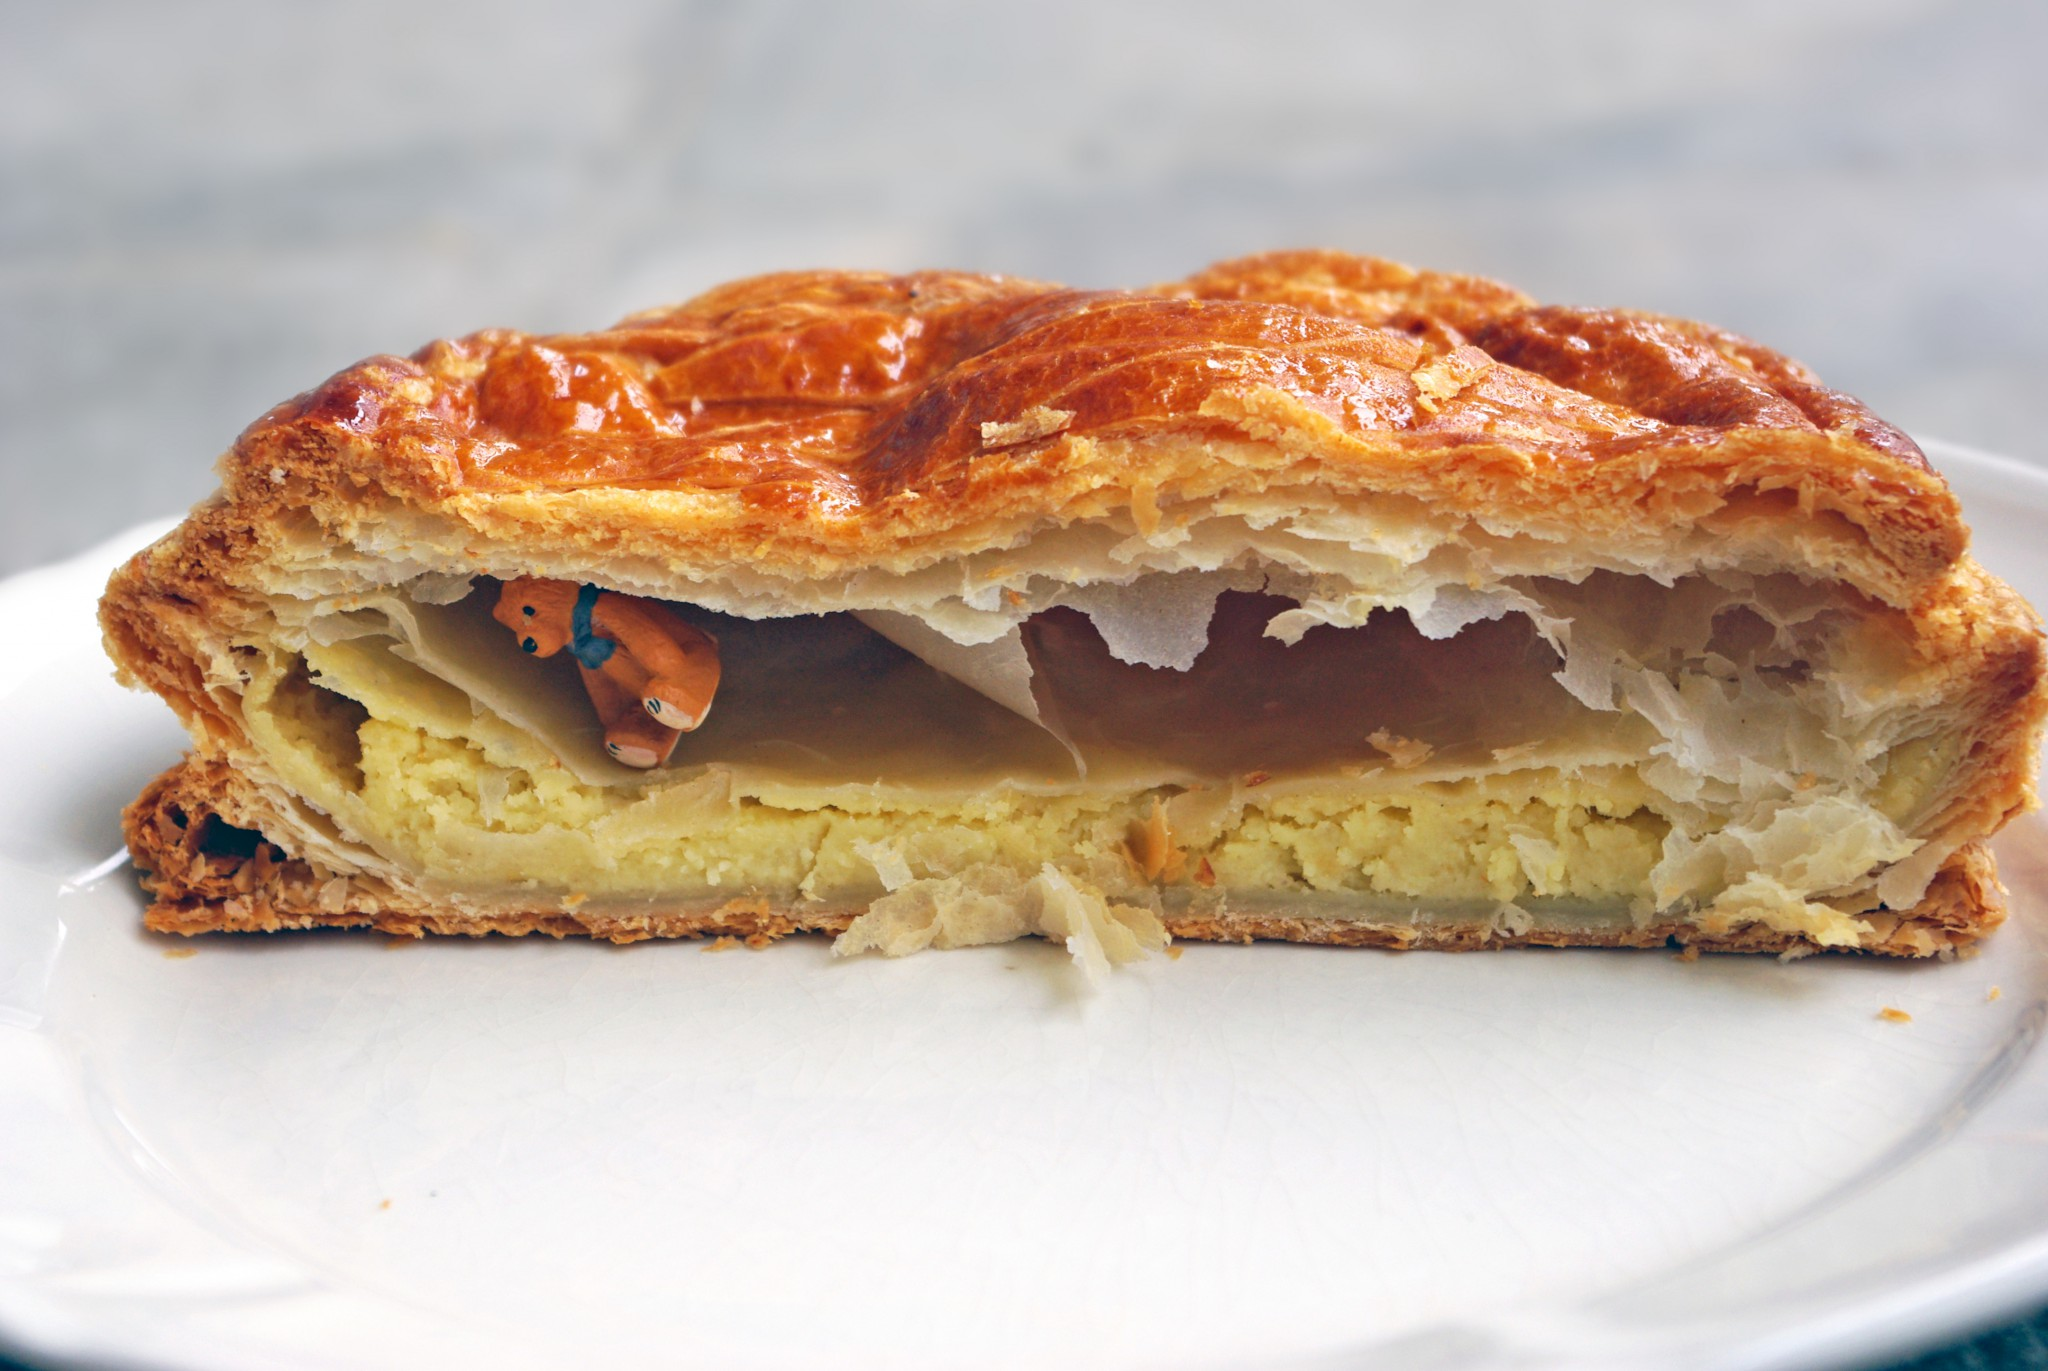 Today is epiphany in france french moments - Galette des rois image ...